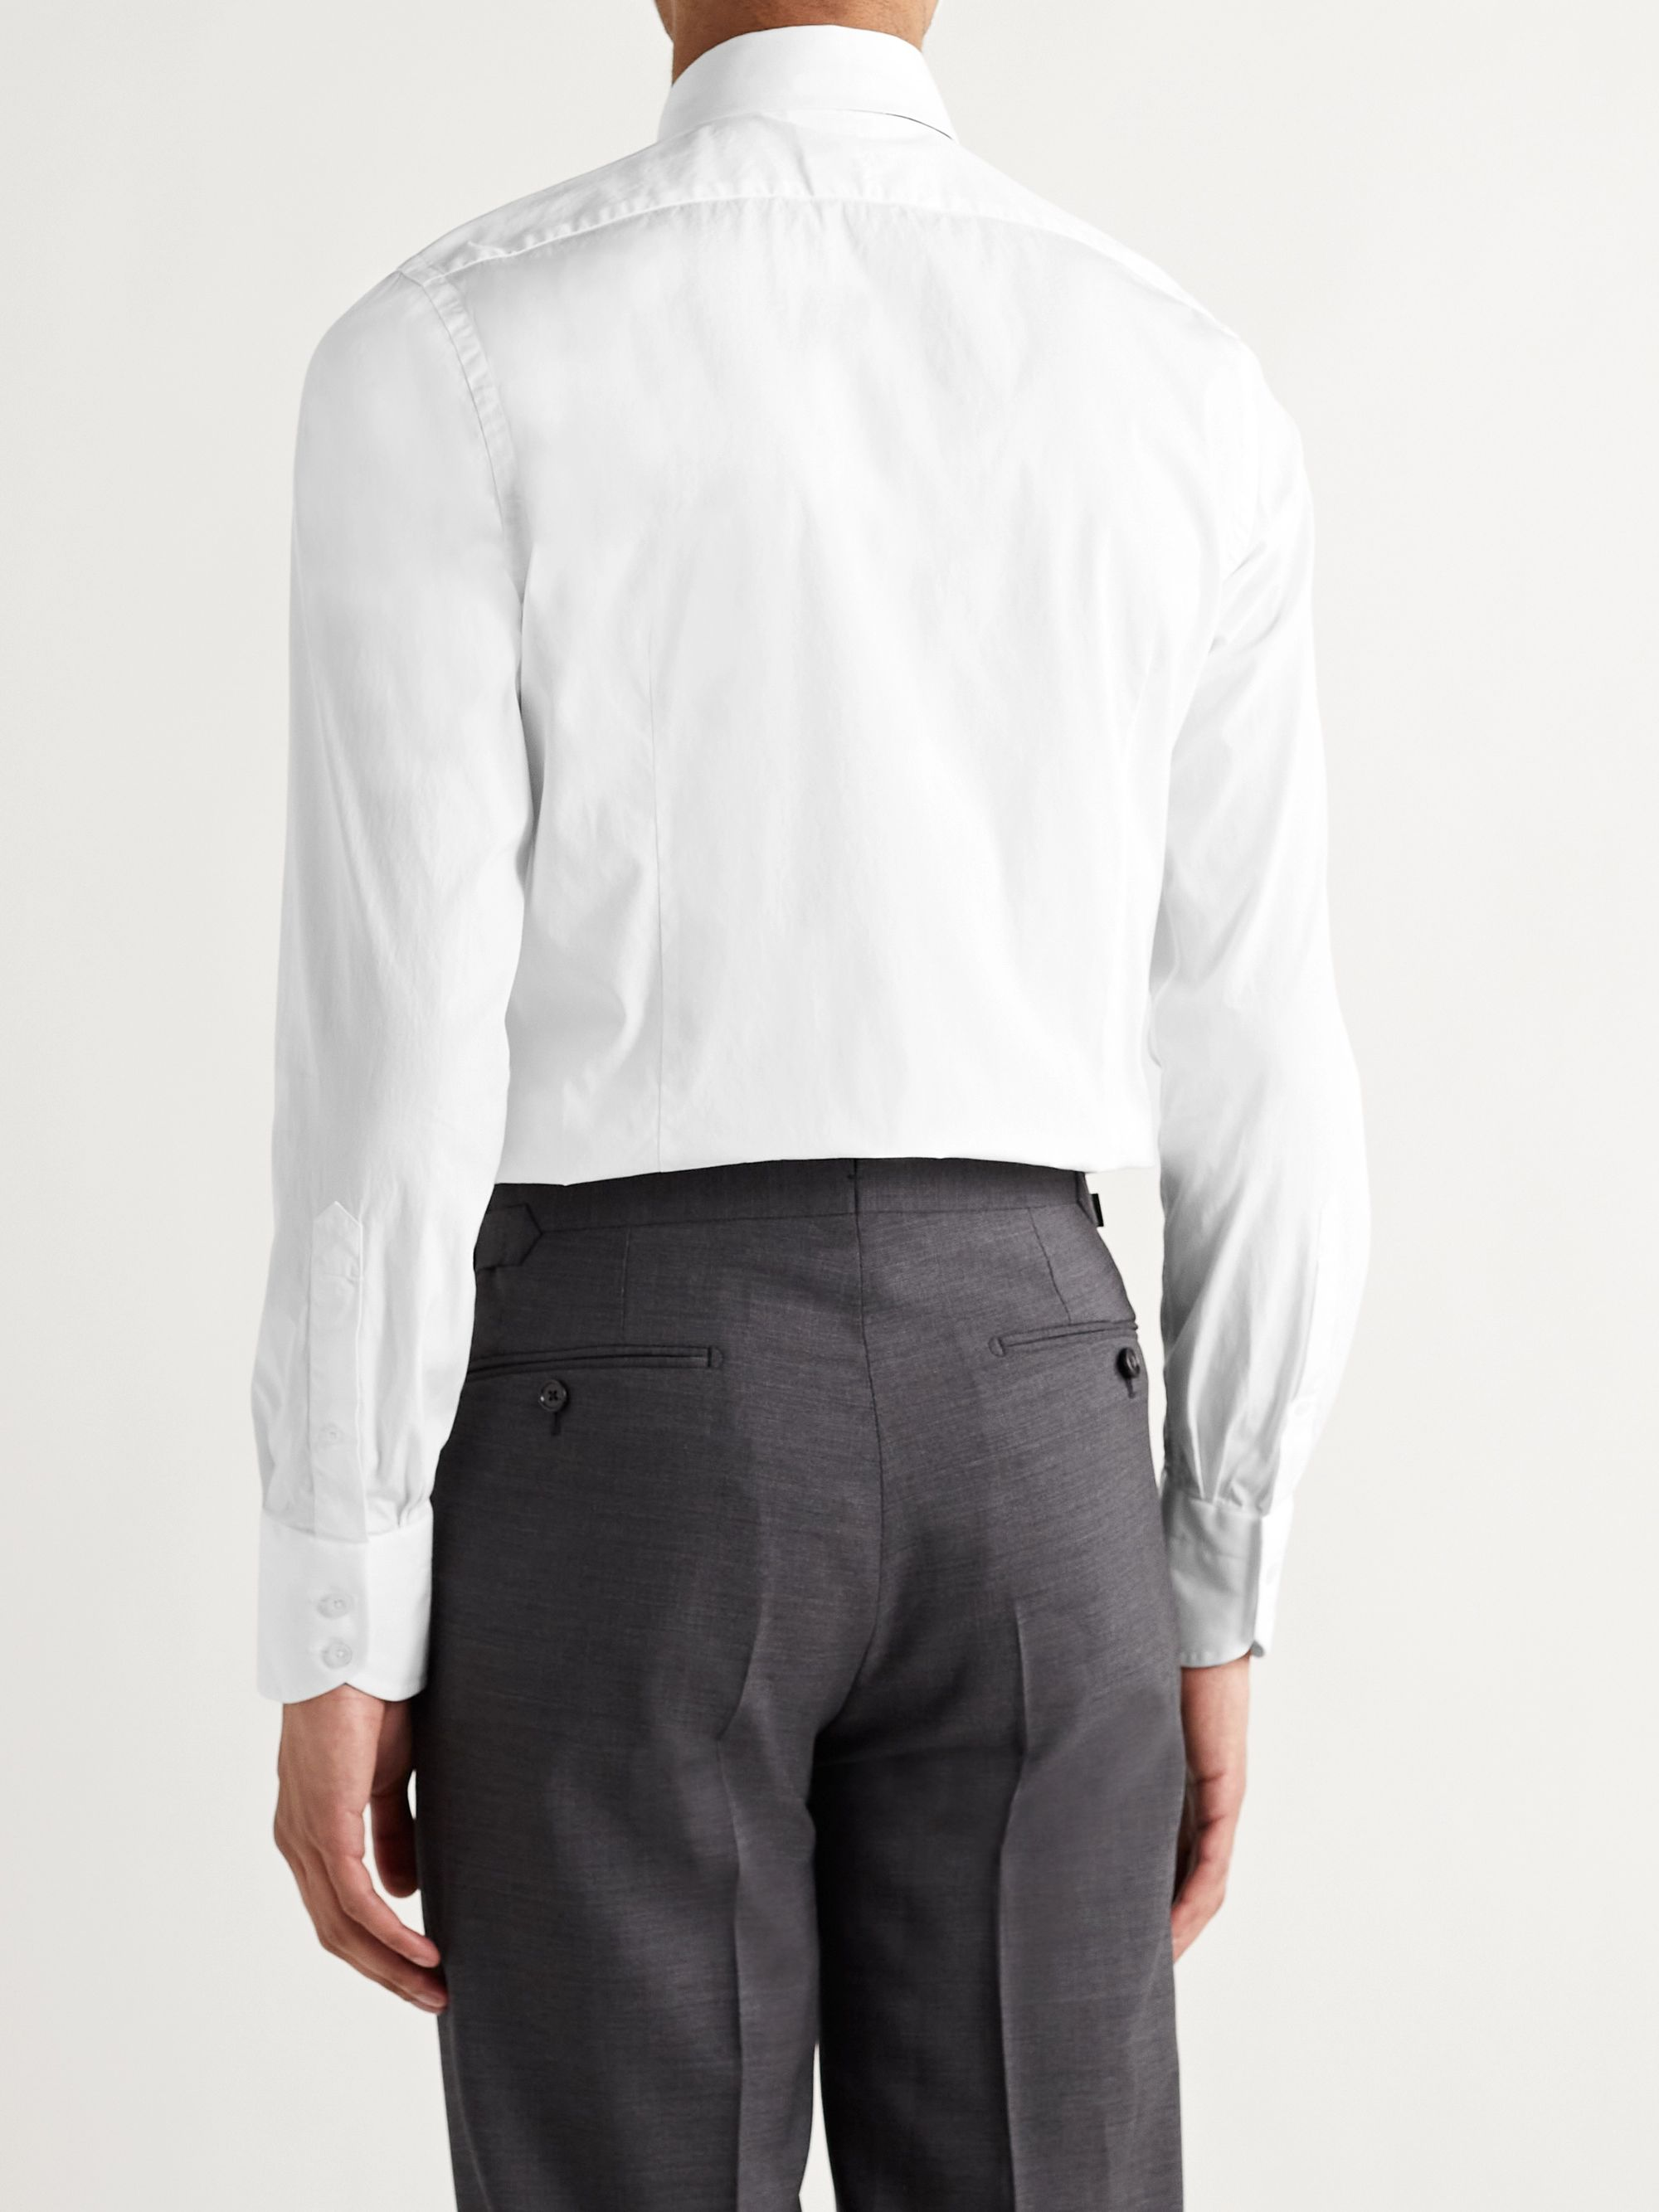 TOM FORD White Slim-Fit Cutaway-Collar Cotton-Poplin Shirt